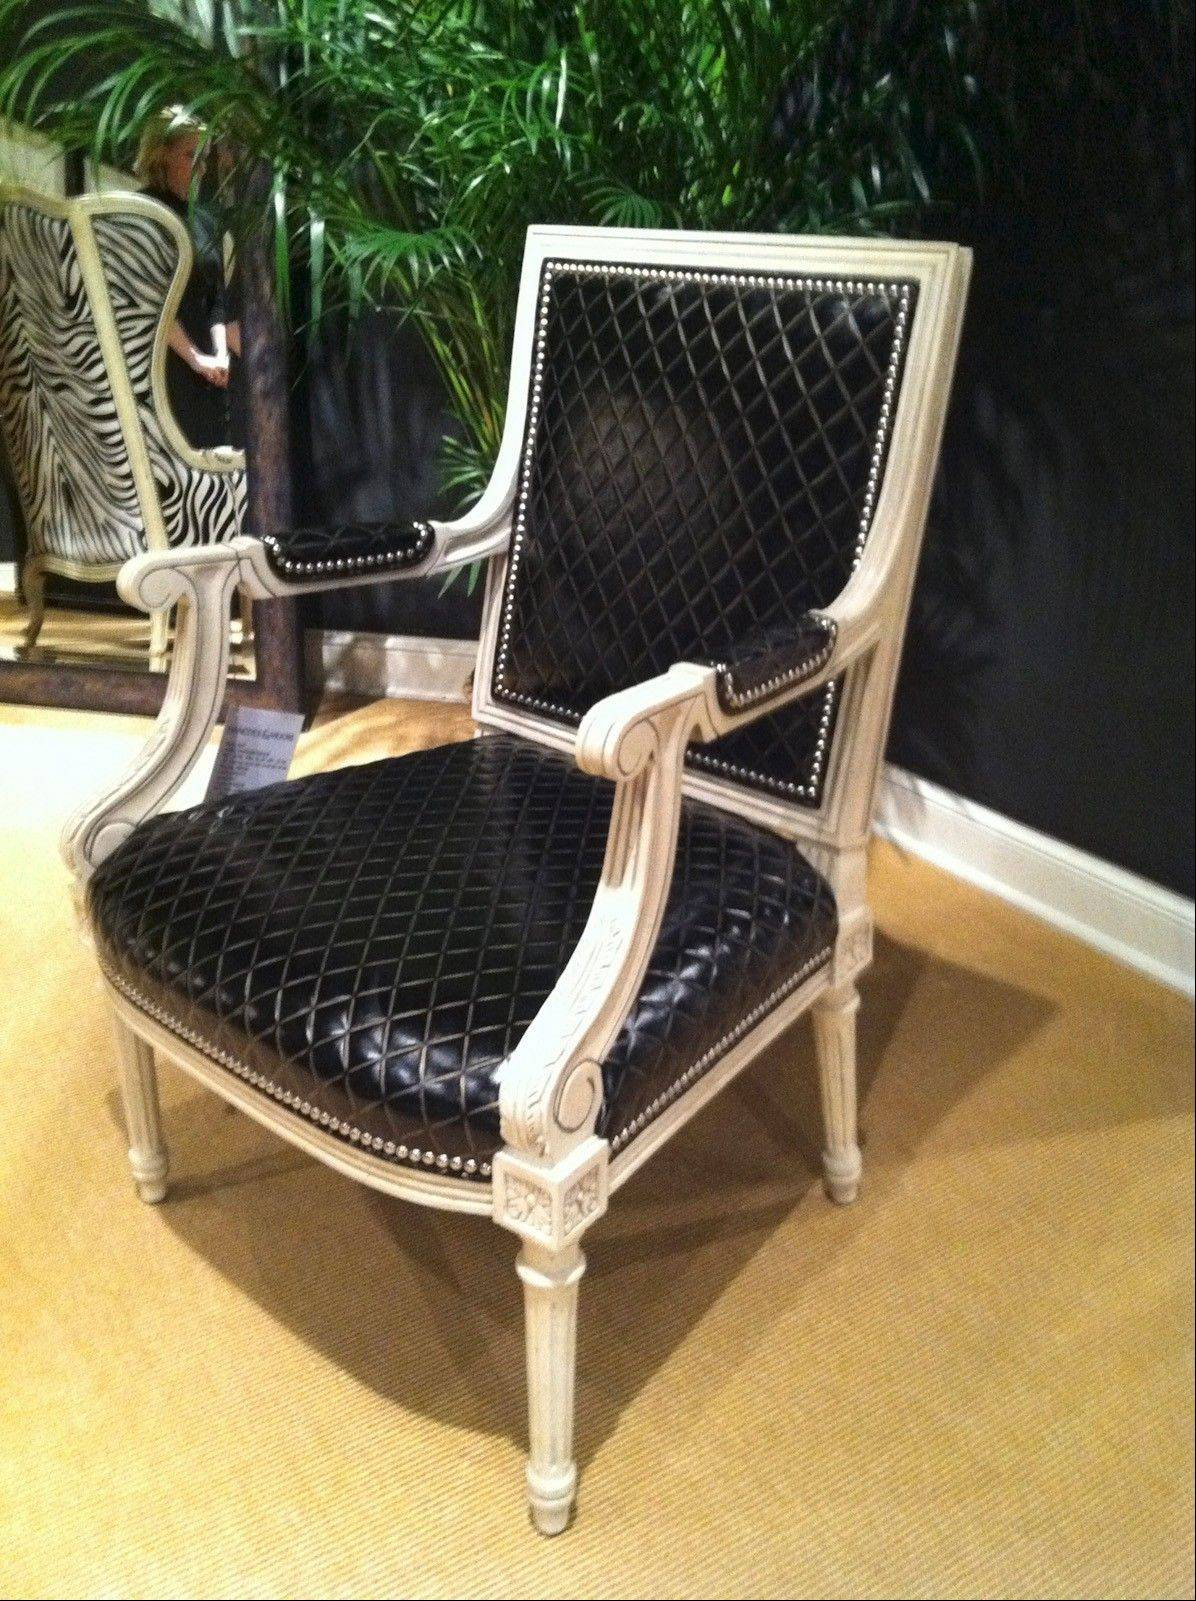 This Hancock & Moore Fowler chair upholstered in prism ebony leather with bisque trim finish and nickel nail heads feels like something Coco Chanel might have designed.